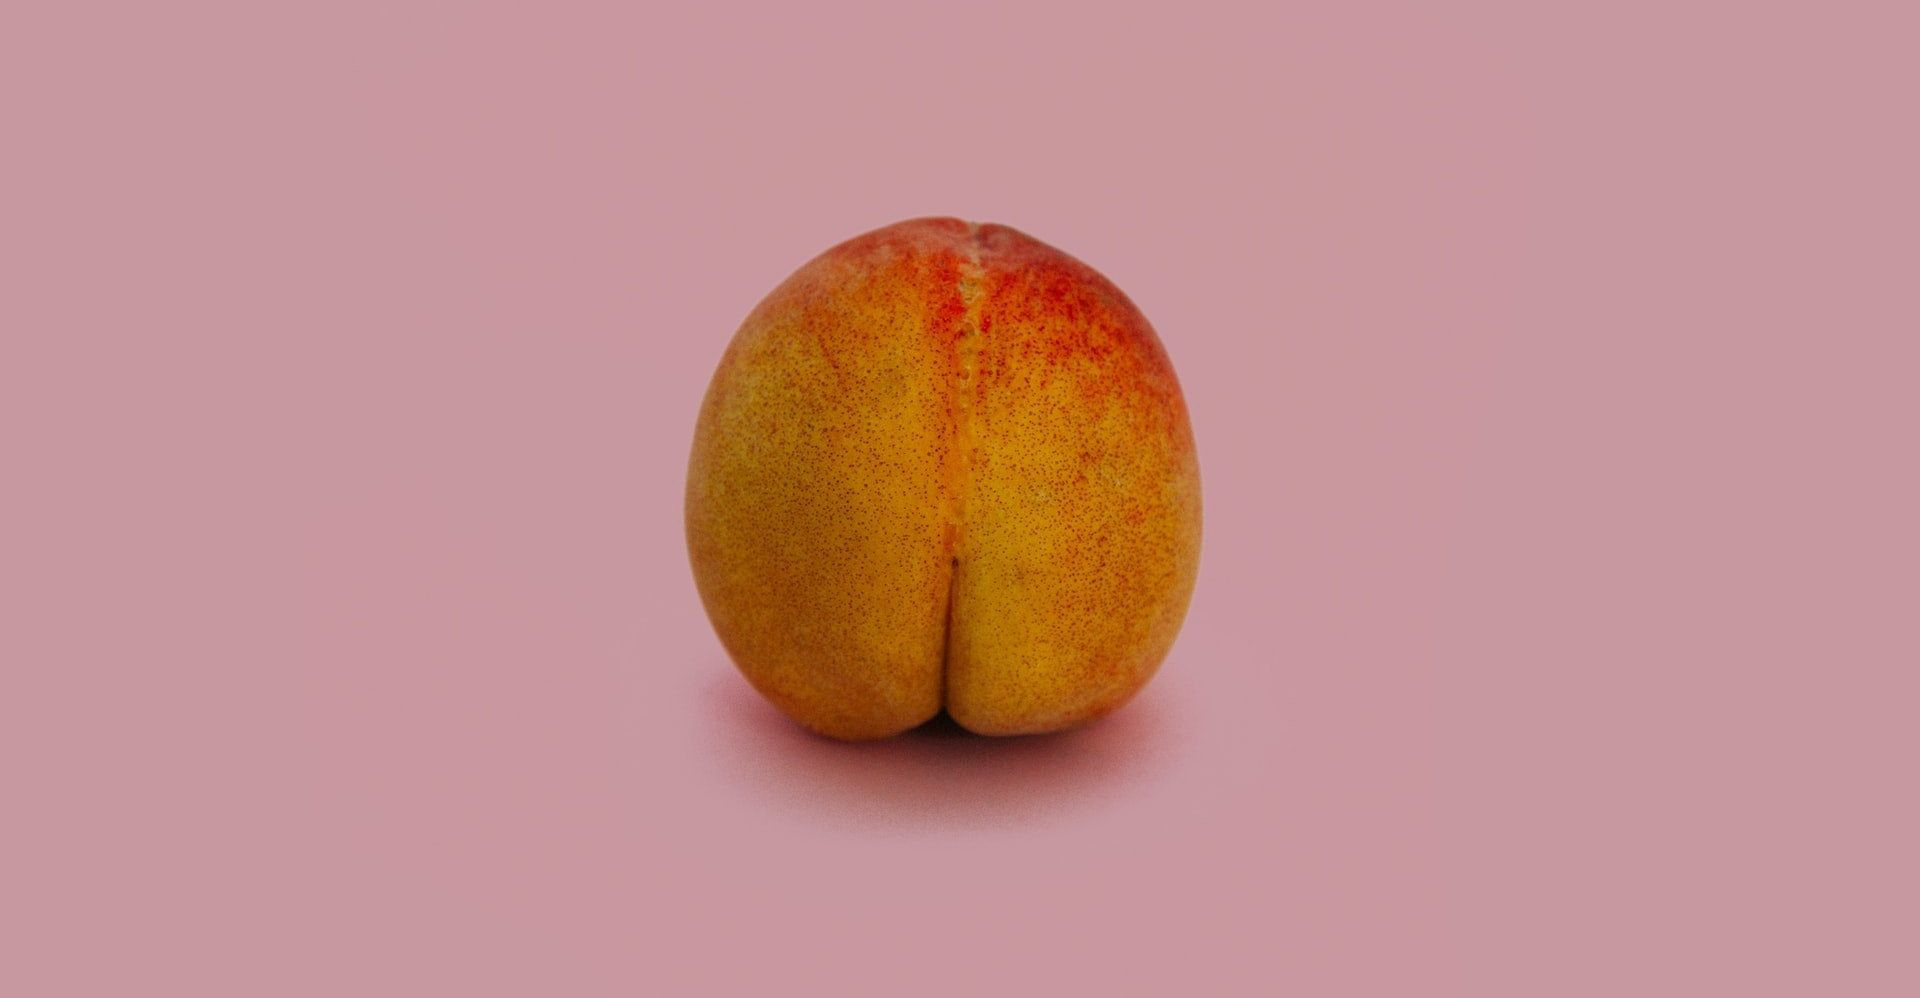 A peach with a 'butt crack' on a pink background